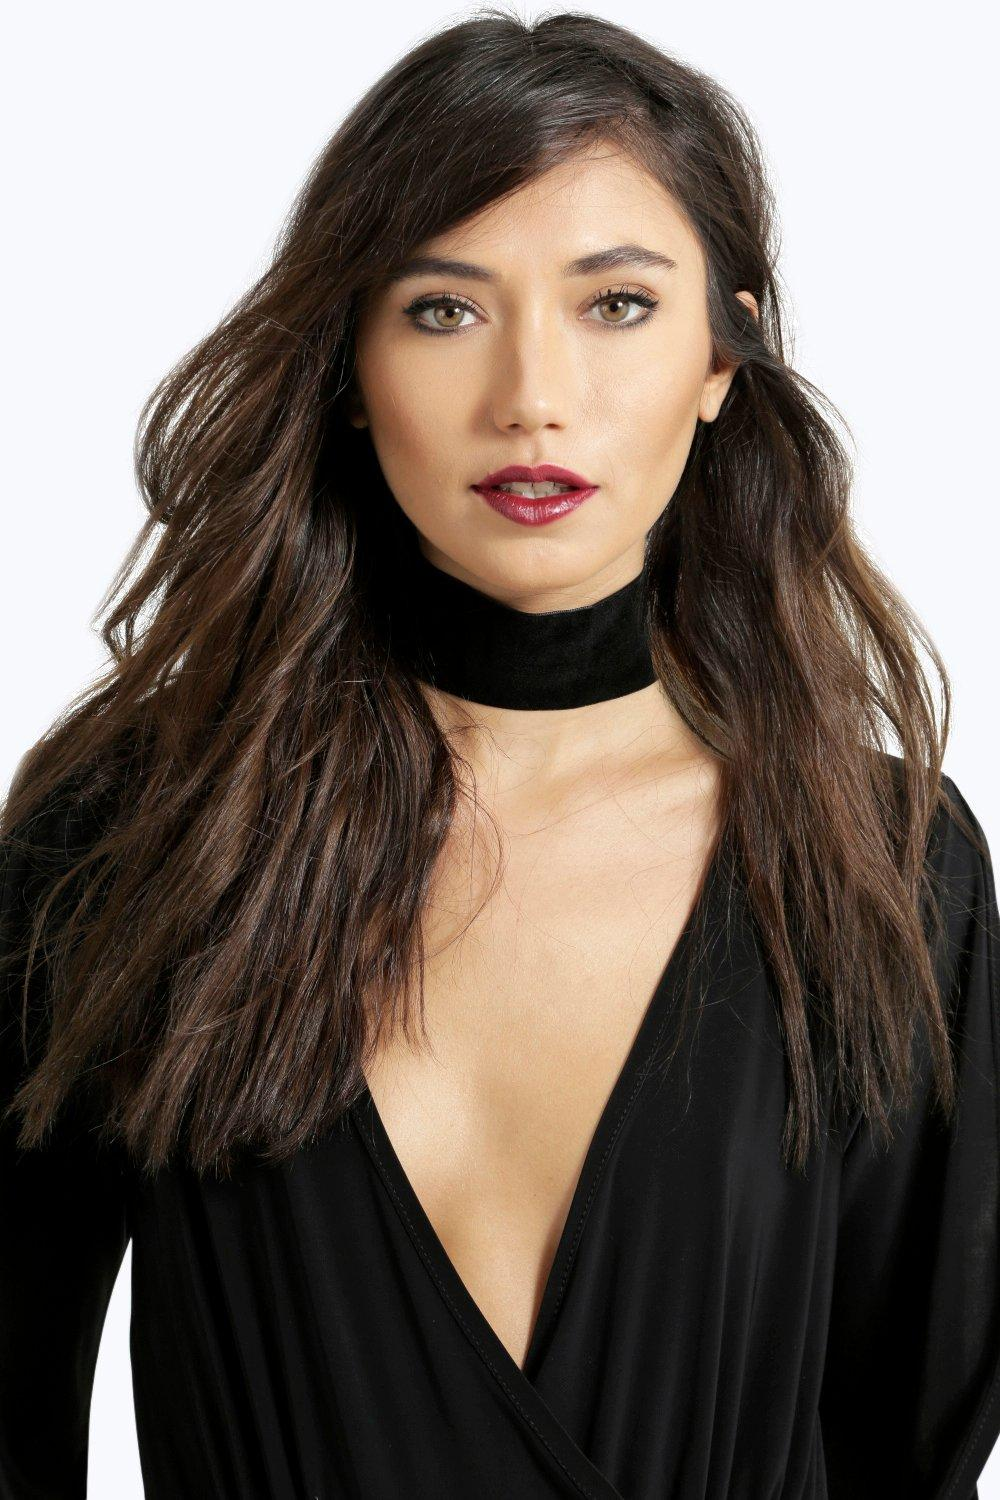 Extra wide black choker from Boohoo, in plain velvet.